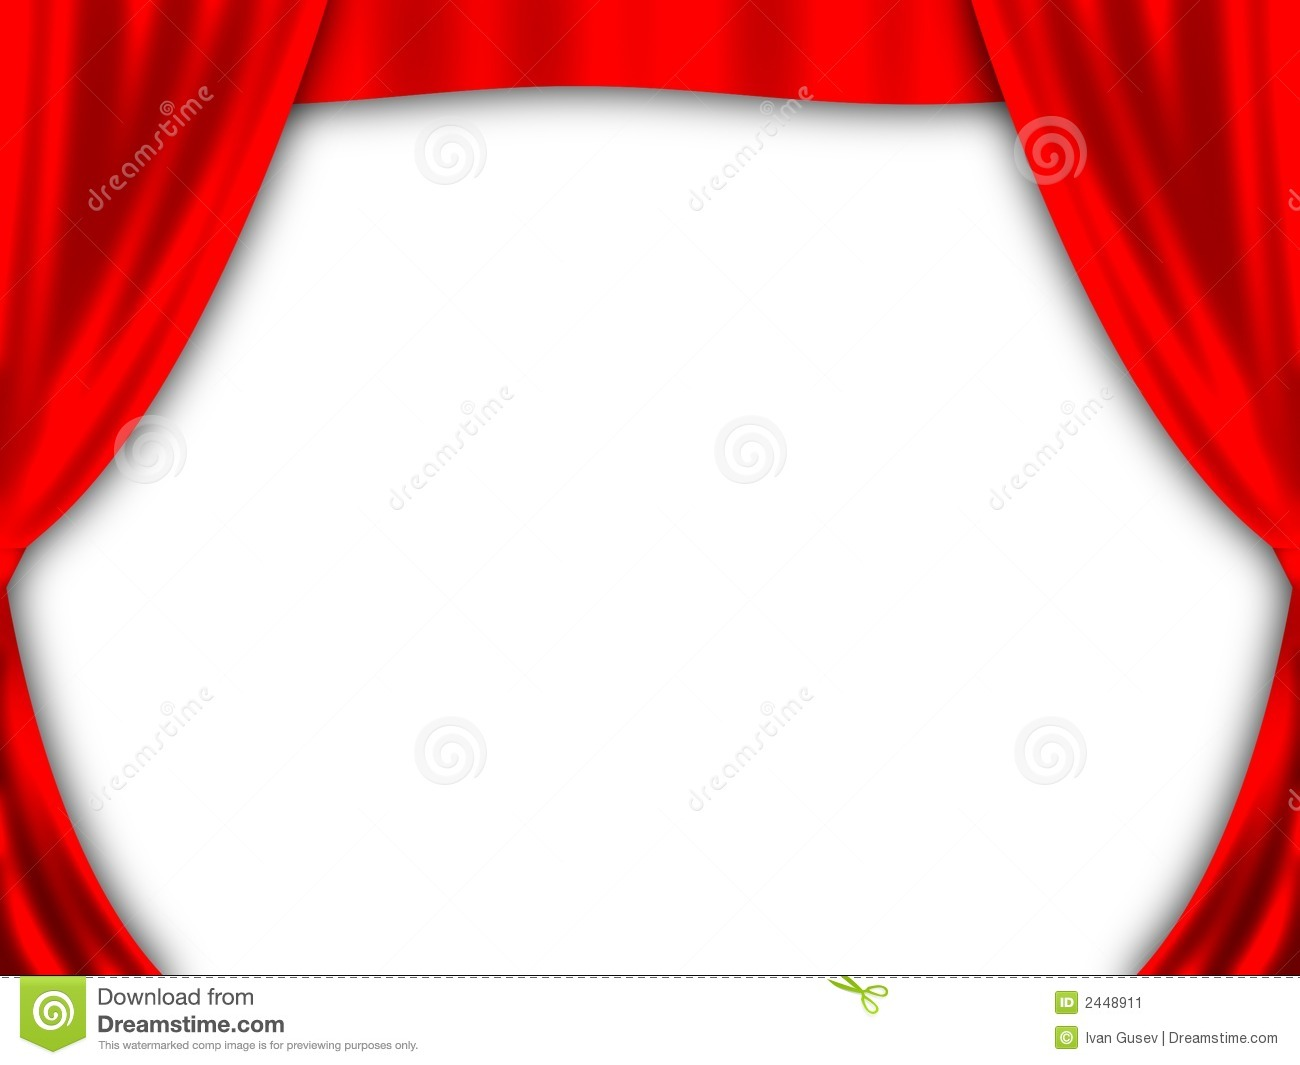 Red Curtain Stock Image - Image: 2448911